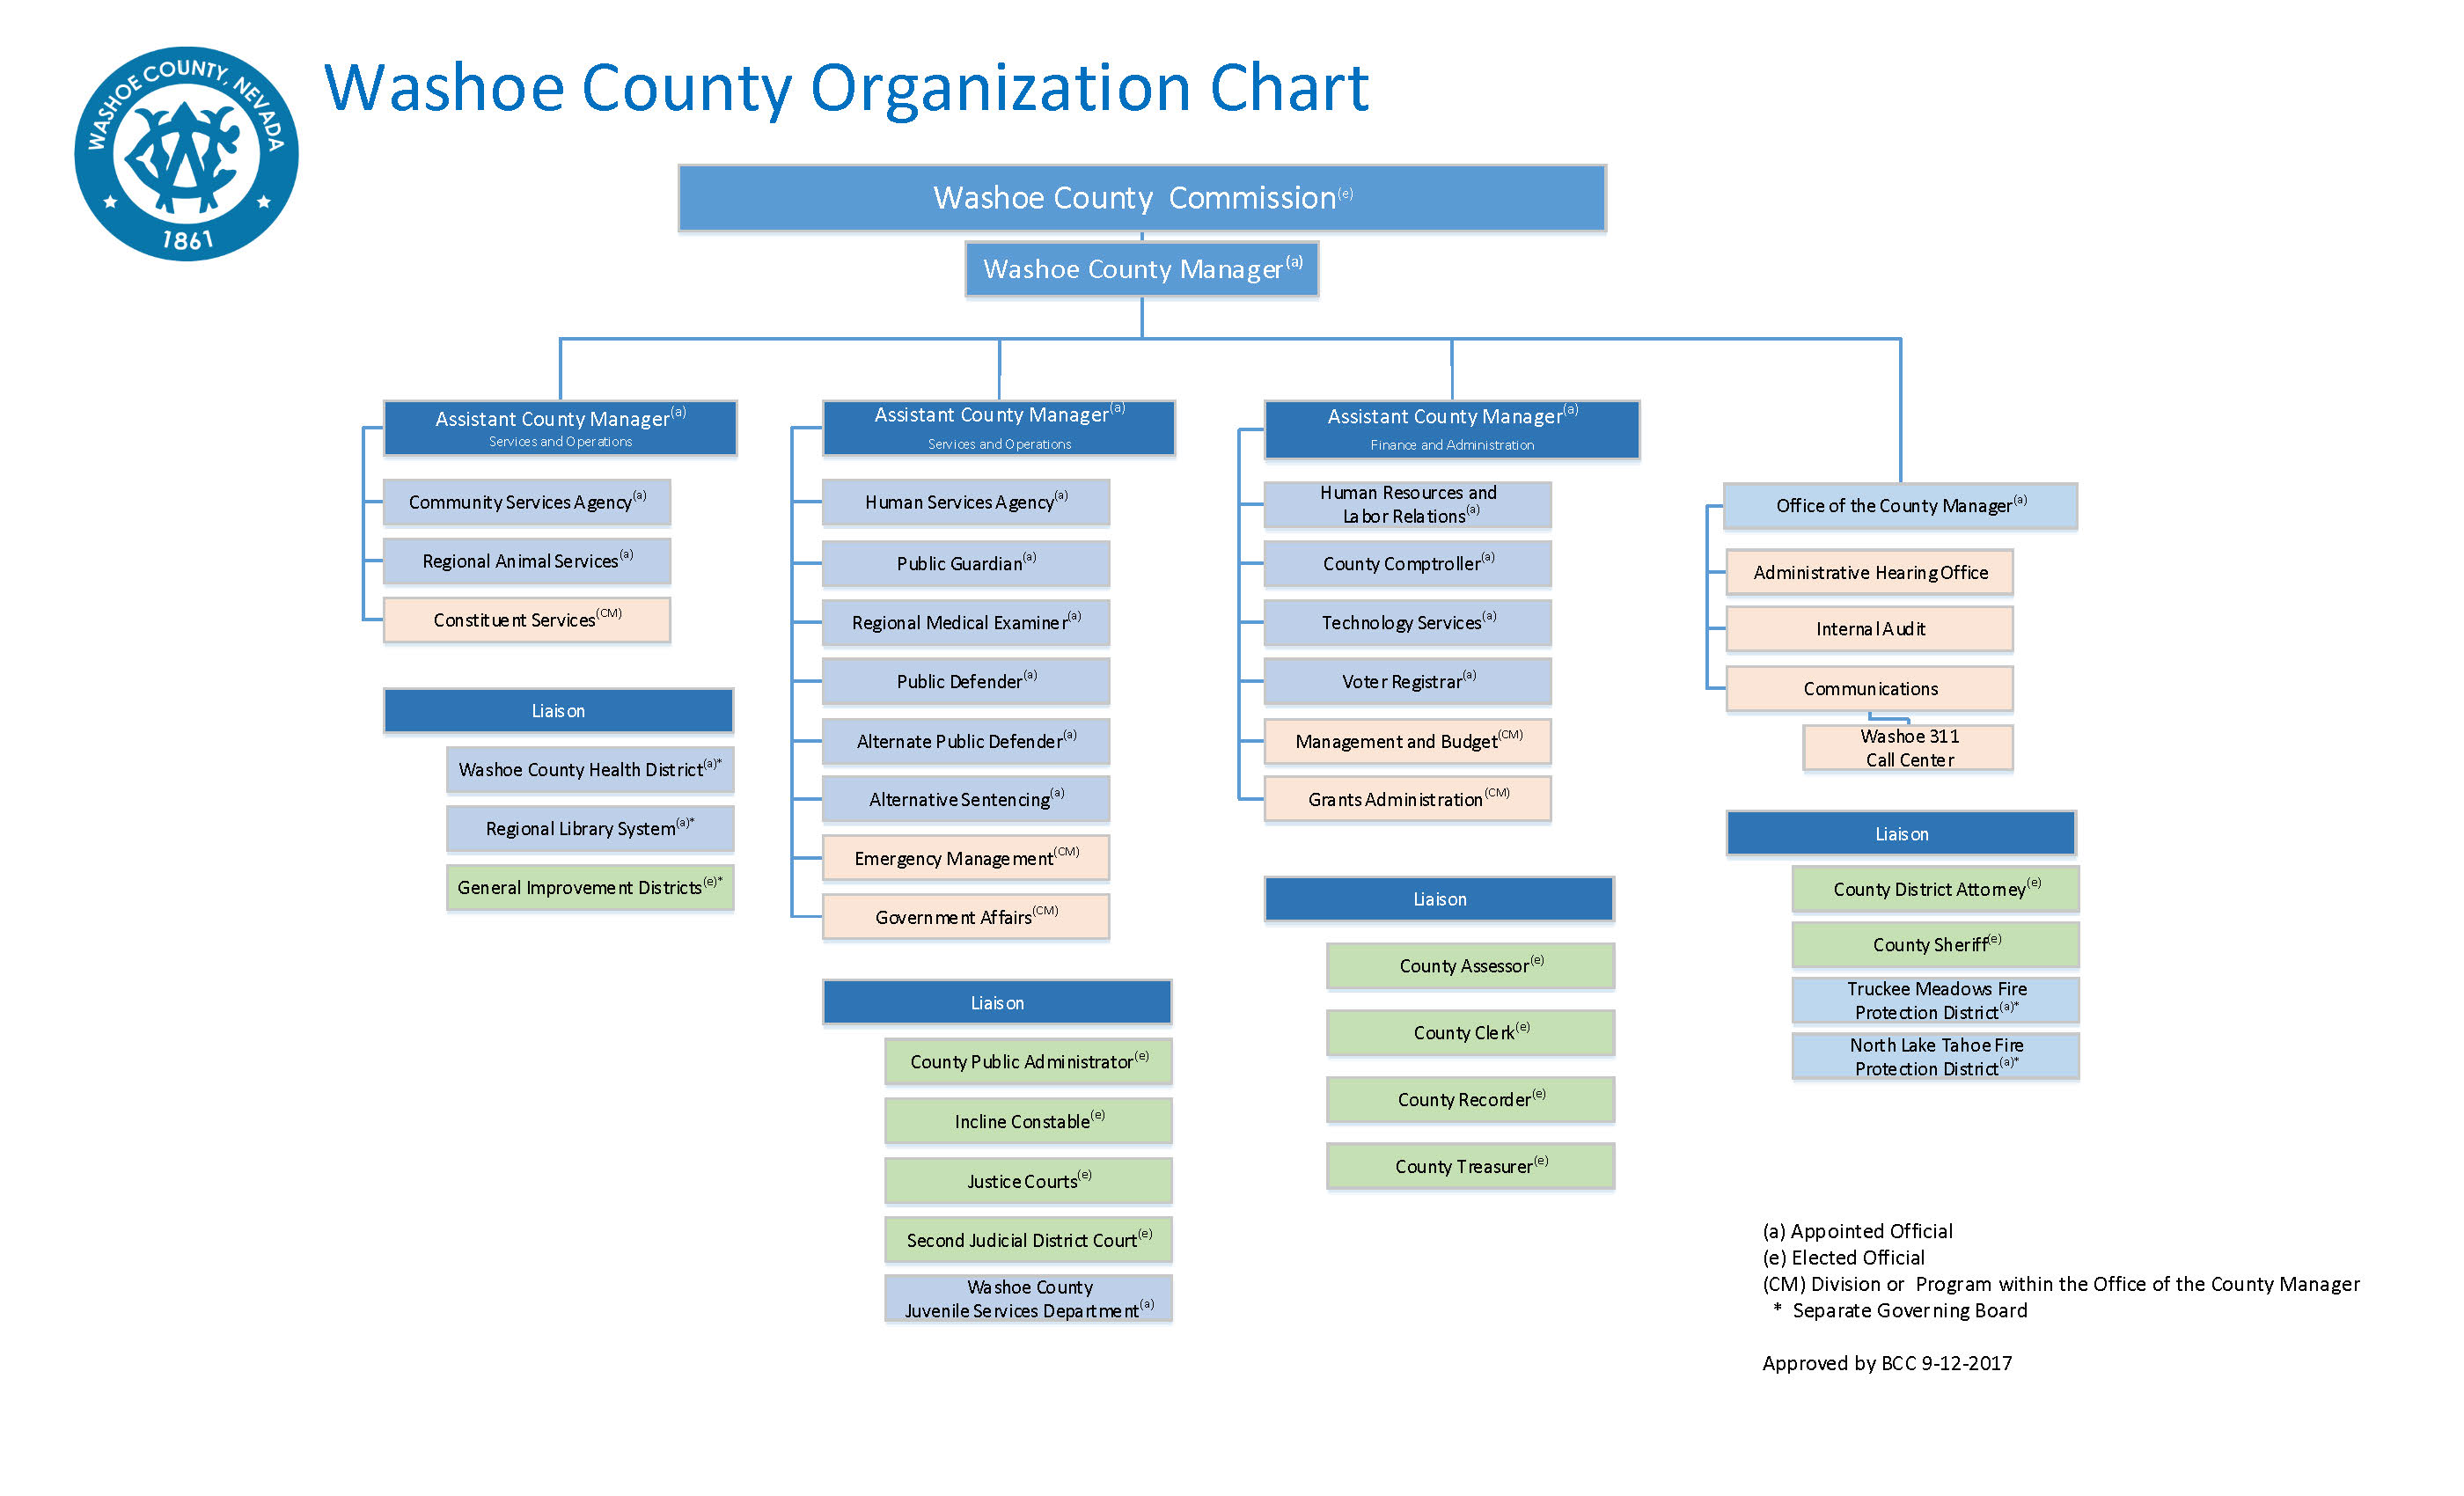 a discussion about organization chart features Constructing an organizational chart all organizational charts have similar elements that allow them to be easily interpreted and understood by people inside and outside of the organization charts consist of shapes and lines that represent work units and their hierarchy.